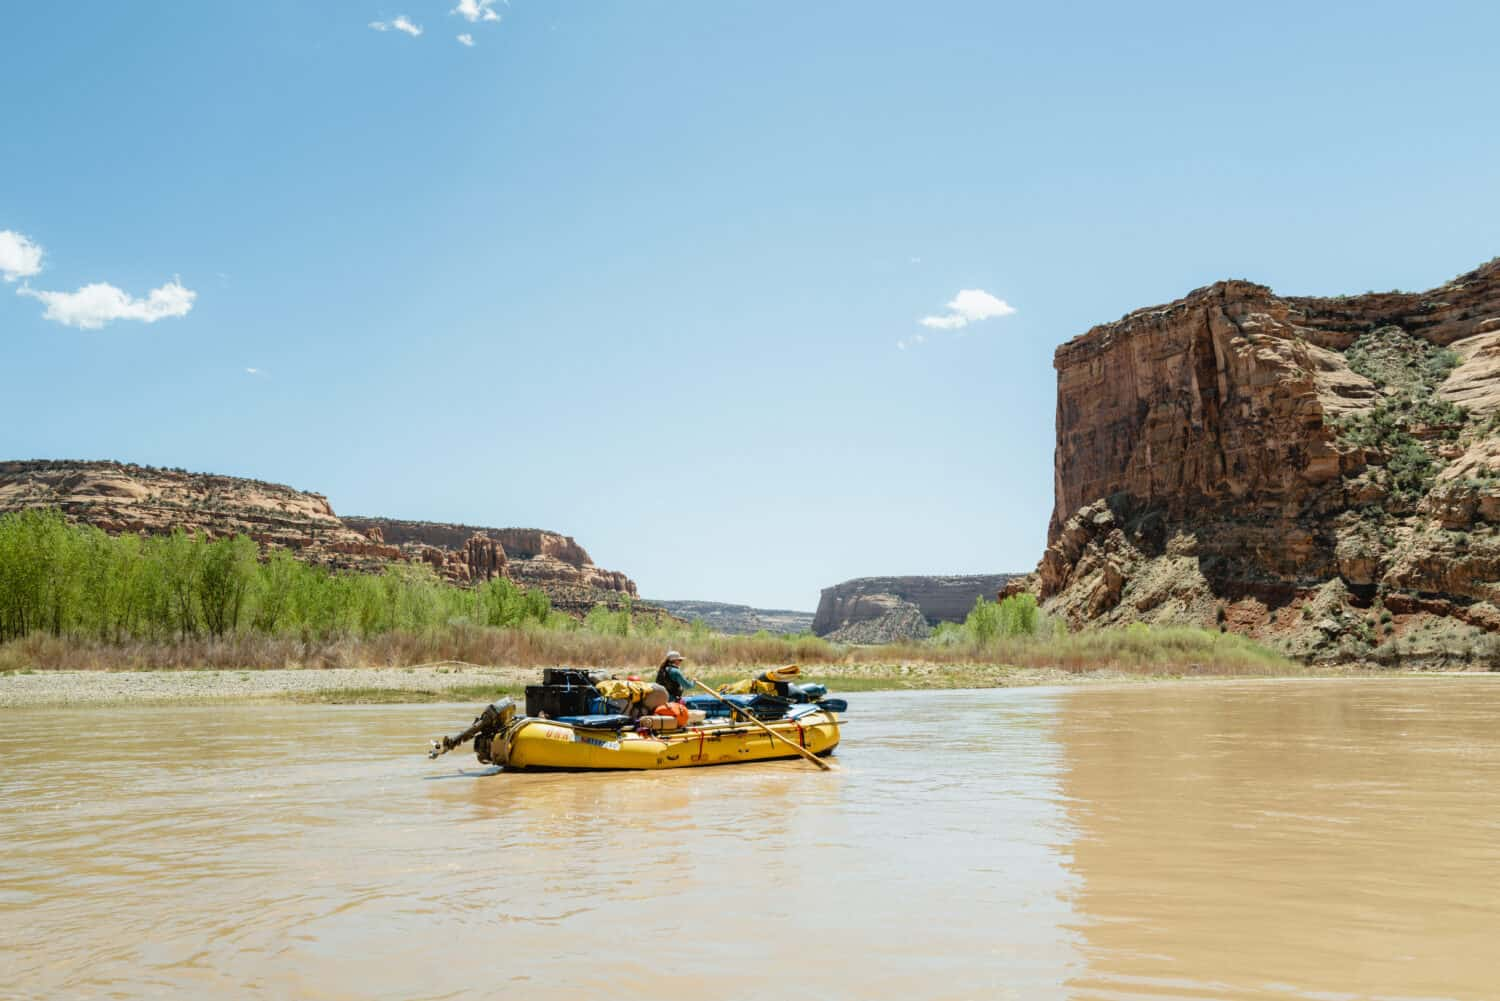 Paddling on the river in Ruby Horsethief Canyon